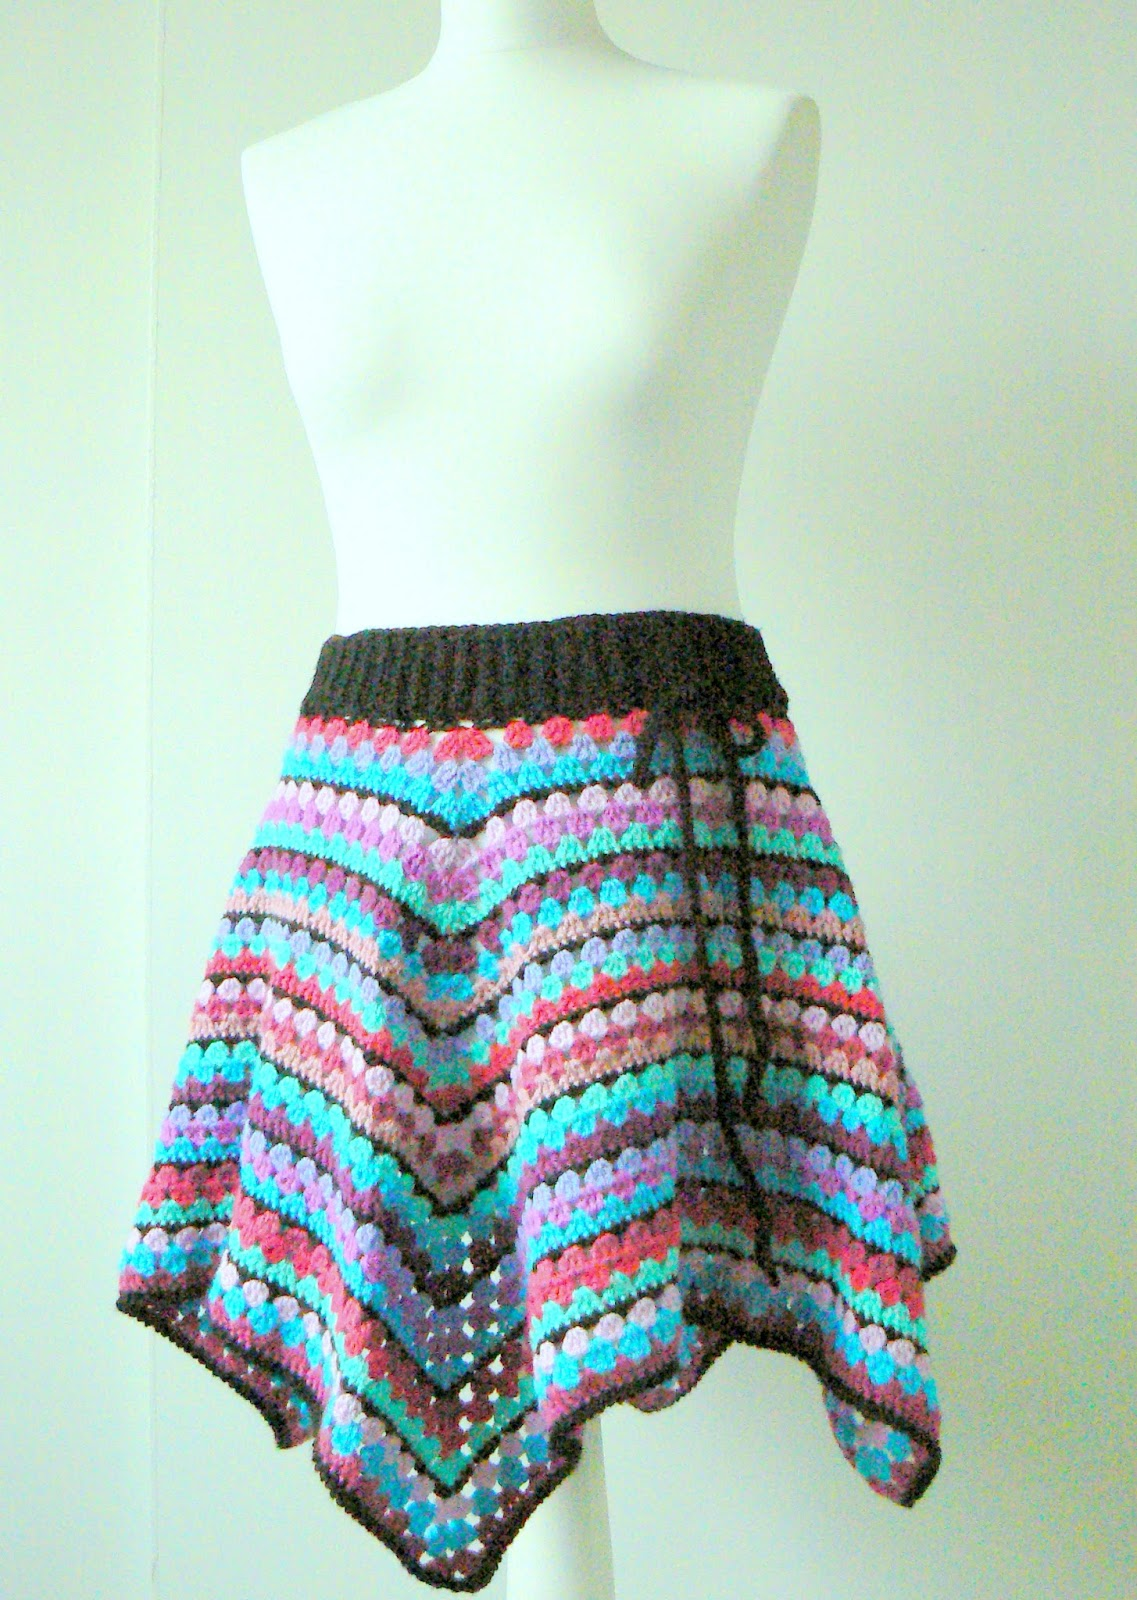 Zig zag crochet skirt free pattern ⋆ Crochet Kingdom | 1600x1137